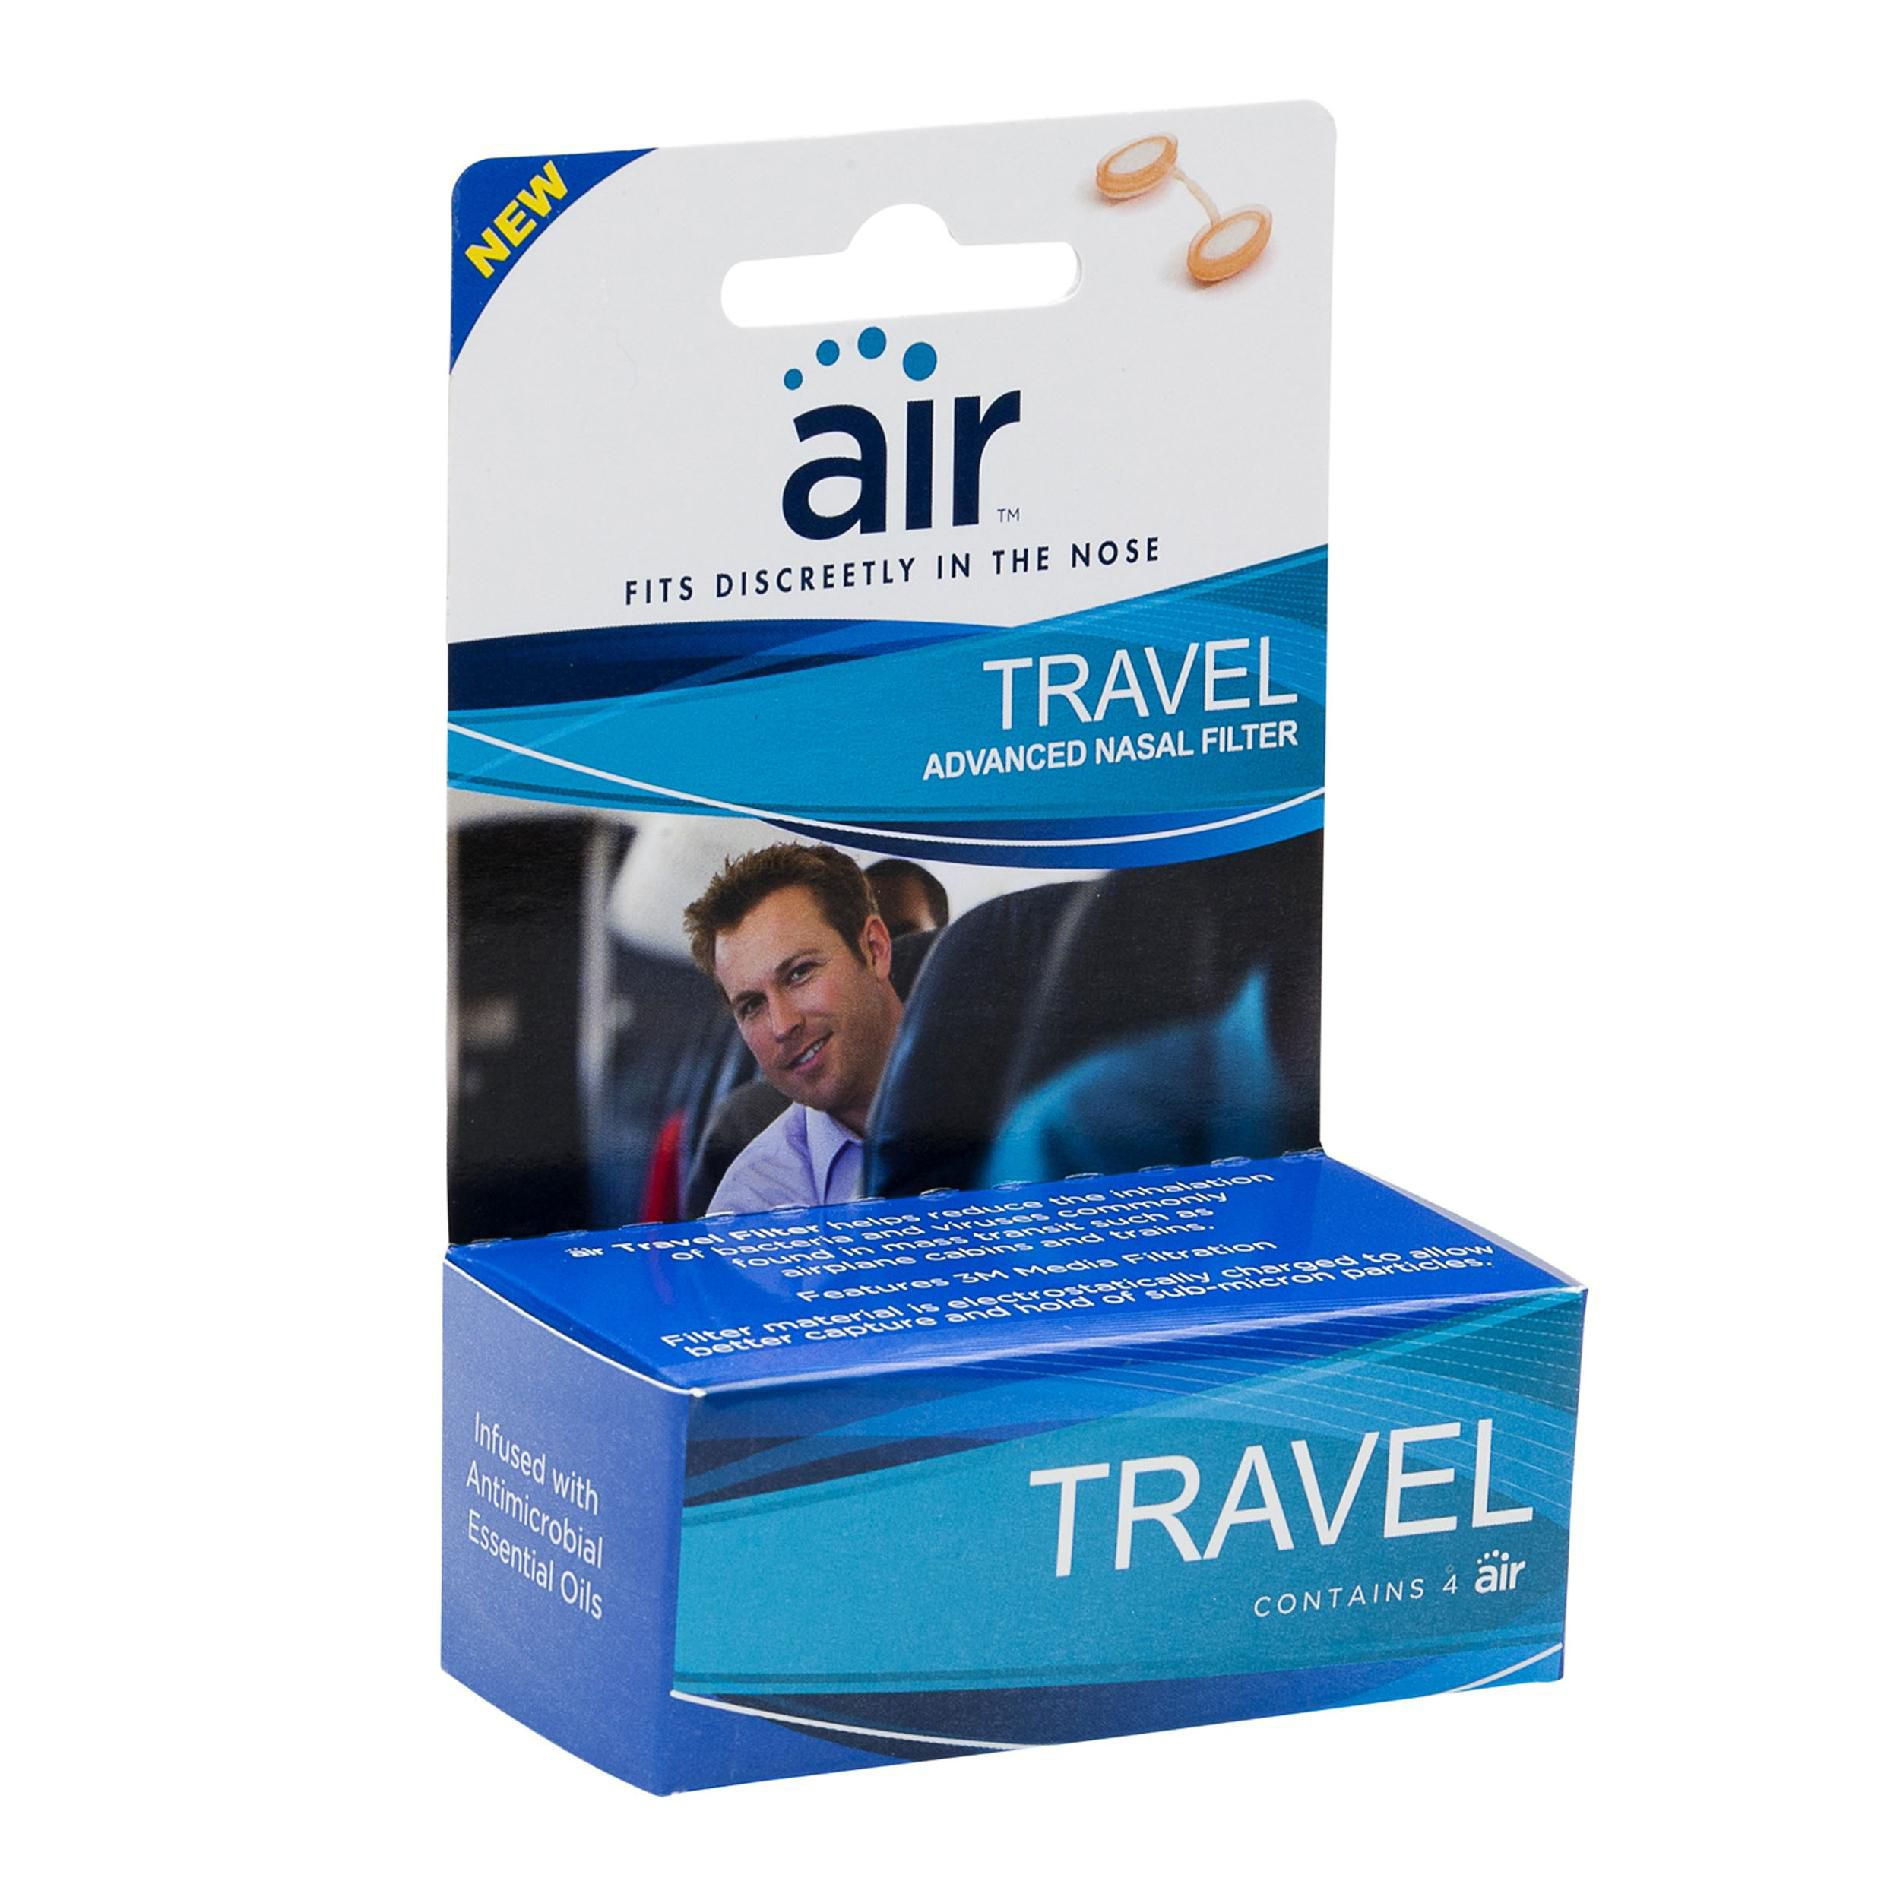 air™ Travel - Advanced Nasal